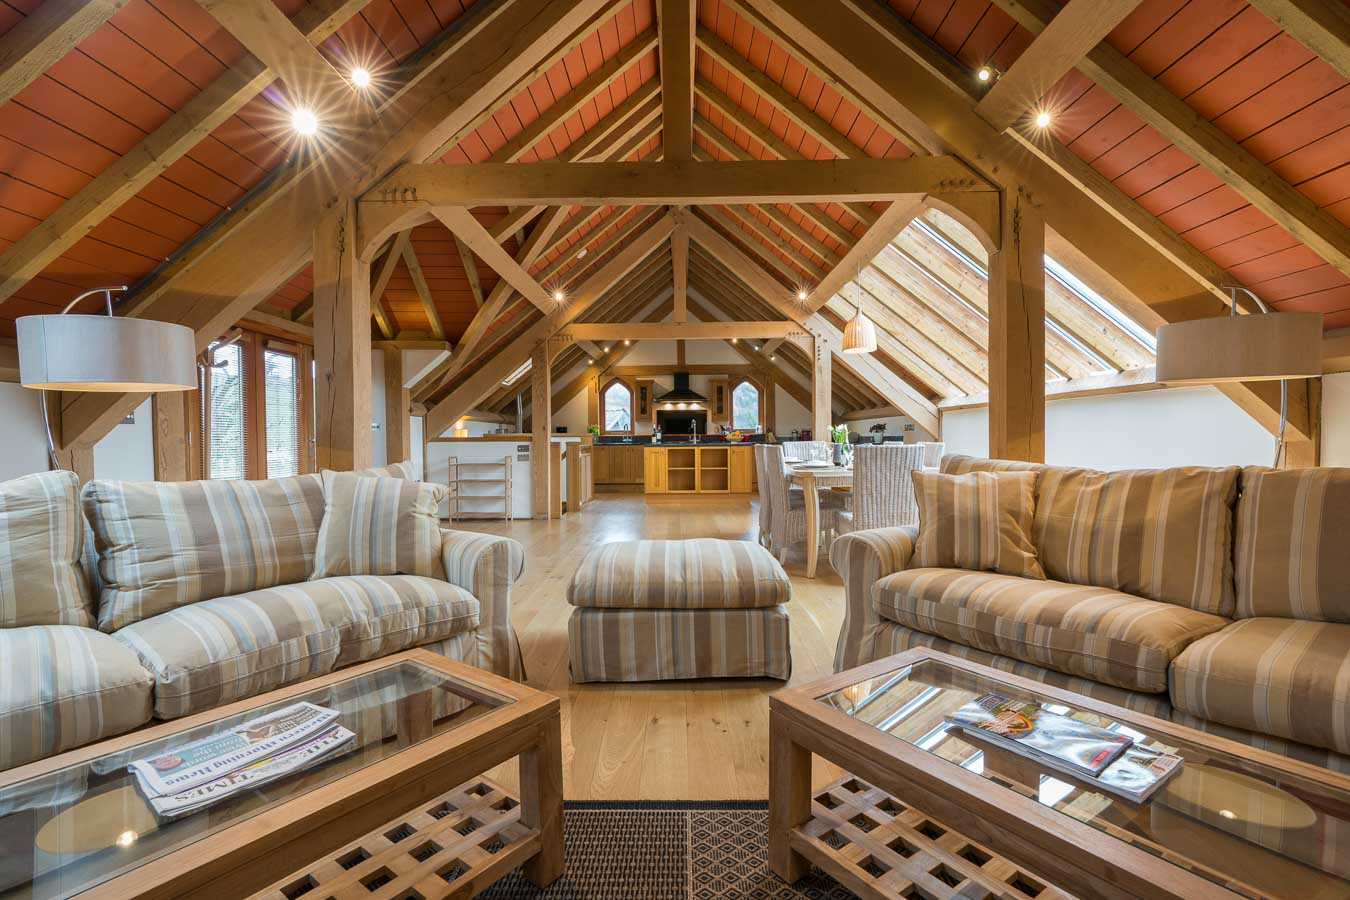 Orchard Lodge is a large luxury 5 star gold holiday cottage that sleeps 6. Offering you all the space you could need with its huge, beautiful open plan Oak living area.